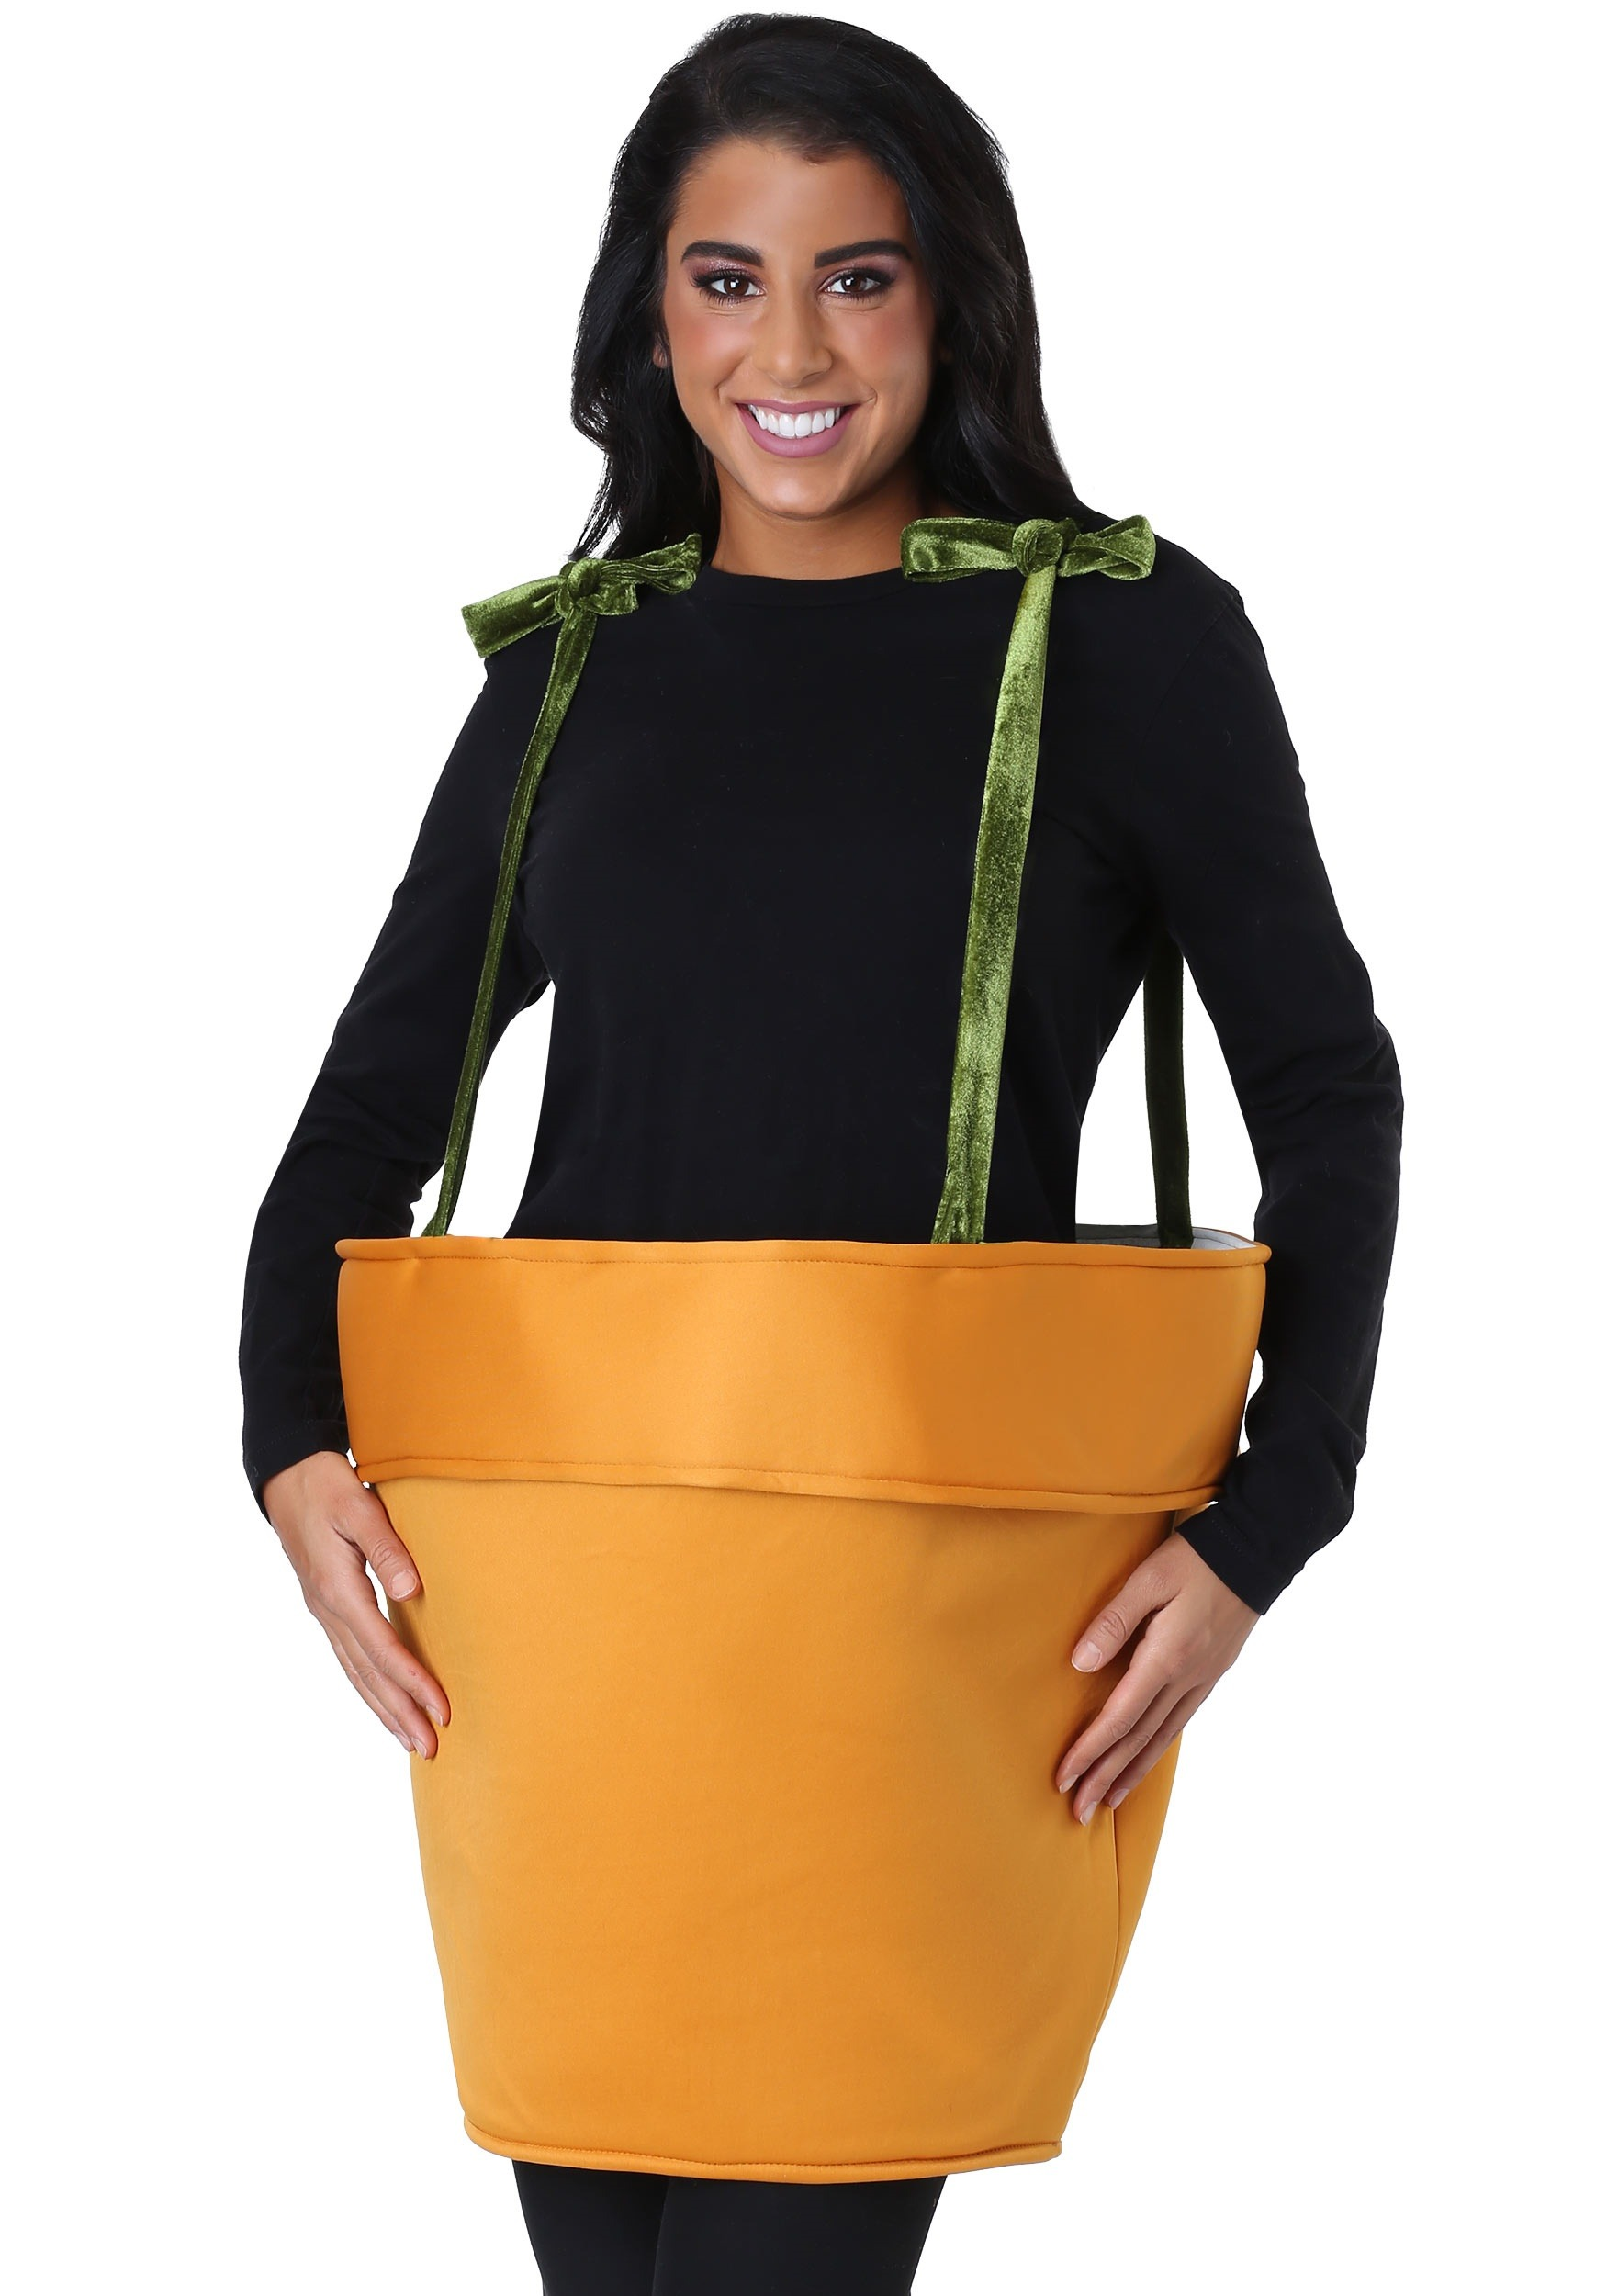 Flower_Pot_Costume_for_Adults